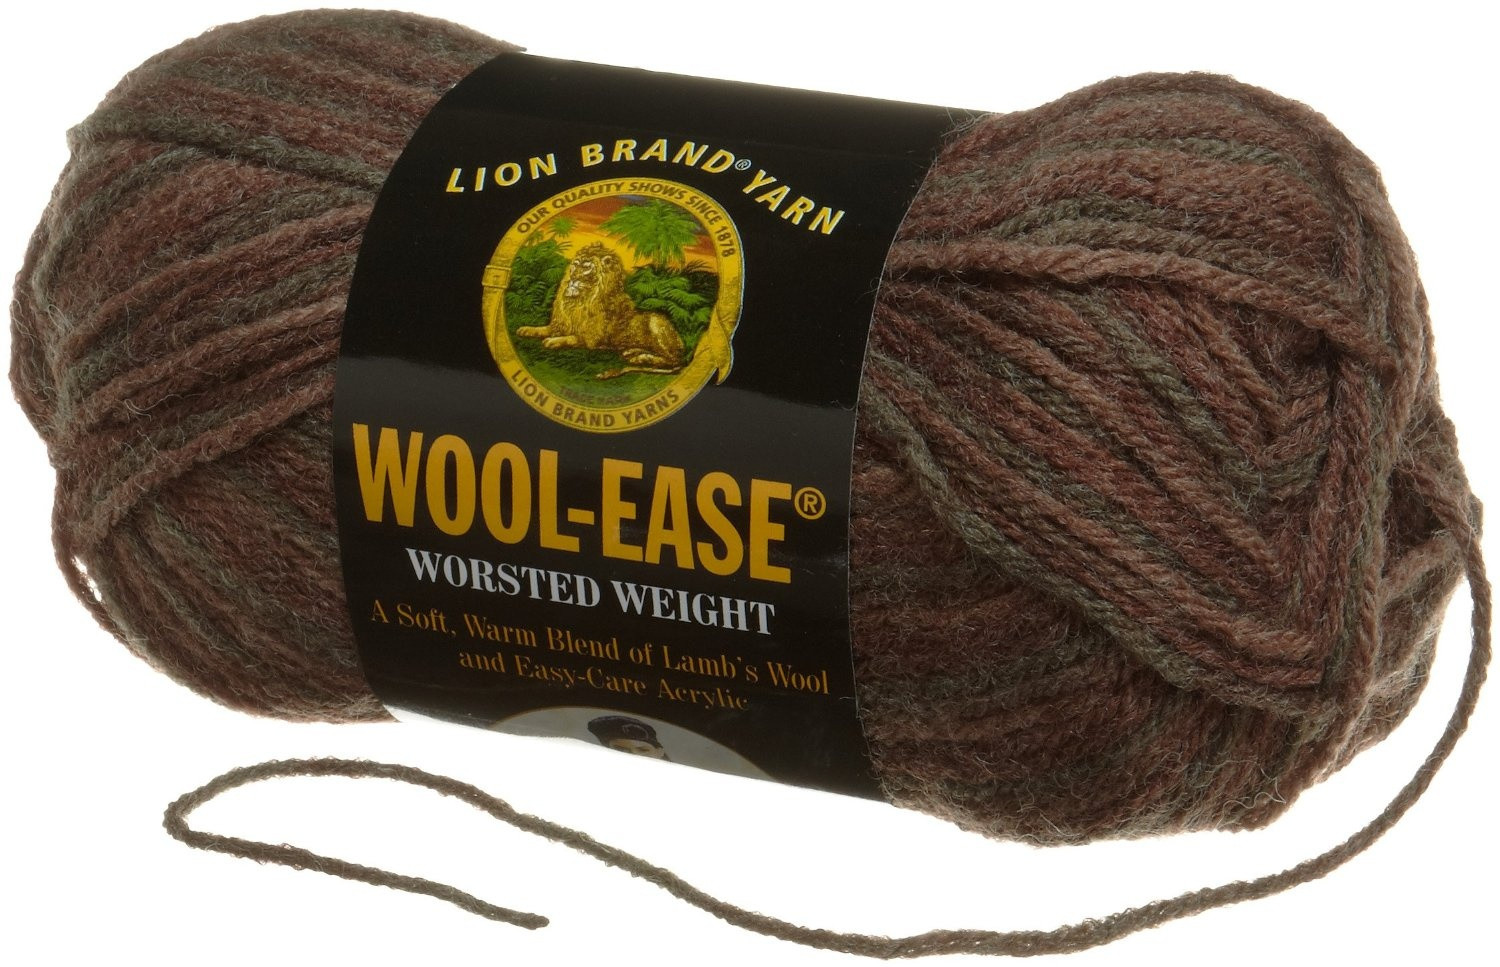 Lion Brand Wool Ease Best Of Lion Brand Wool Ease Yarn Of Lion Brand Wool Ease Elegant Lion Brand Wool Ease Crochet Yarn & Wool